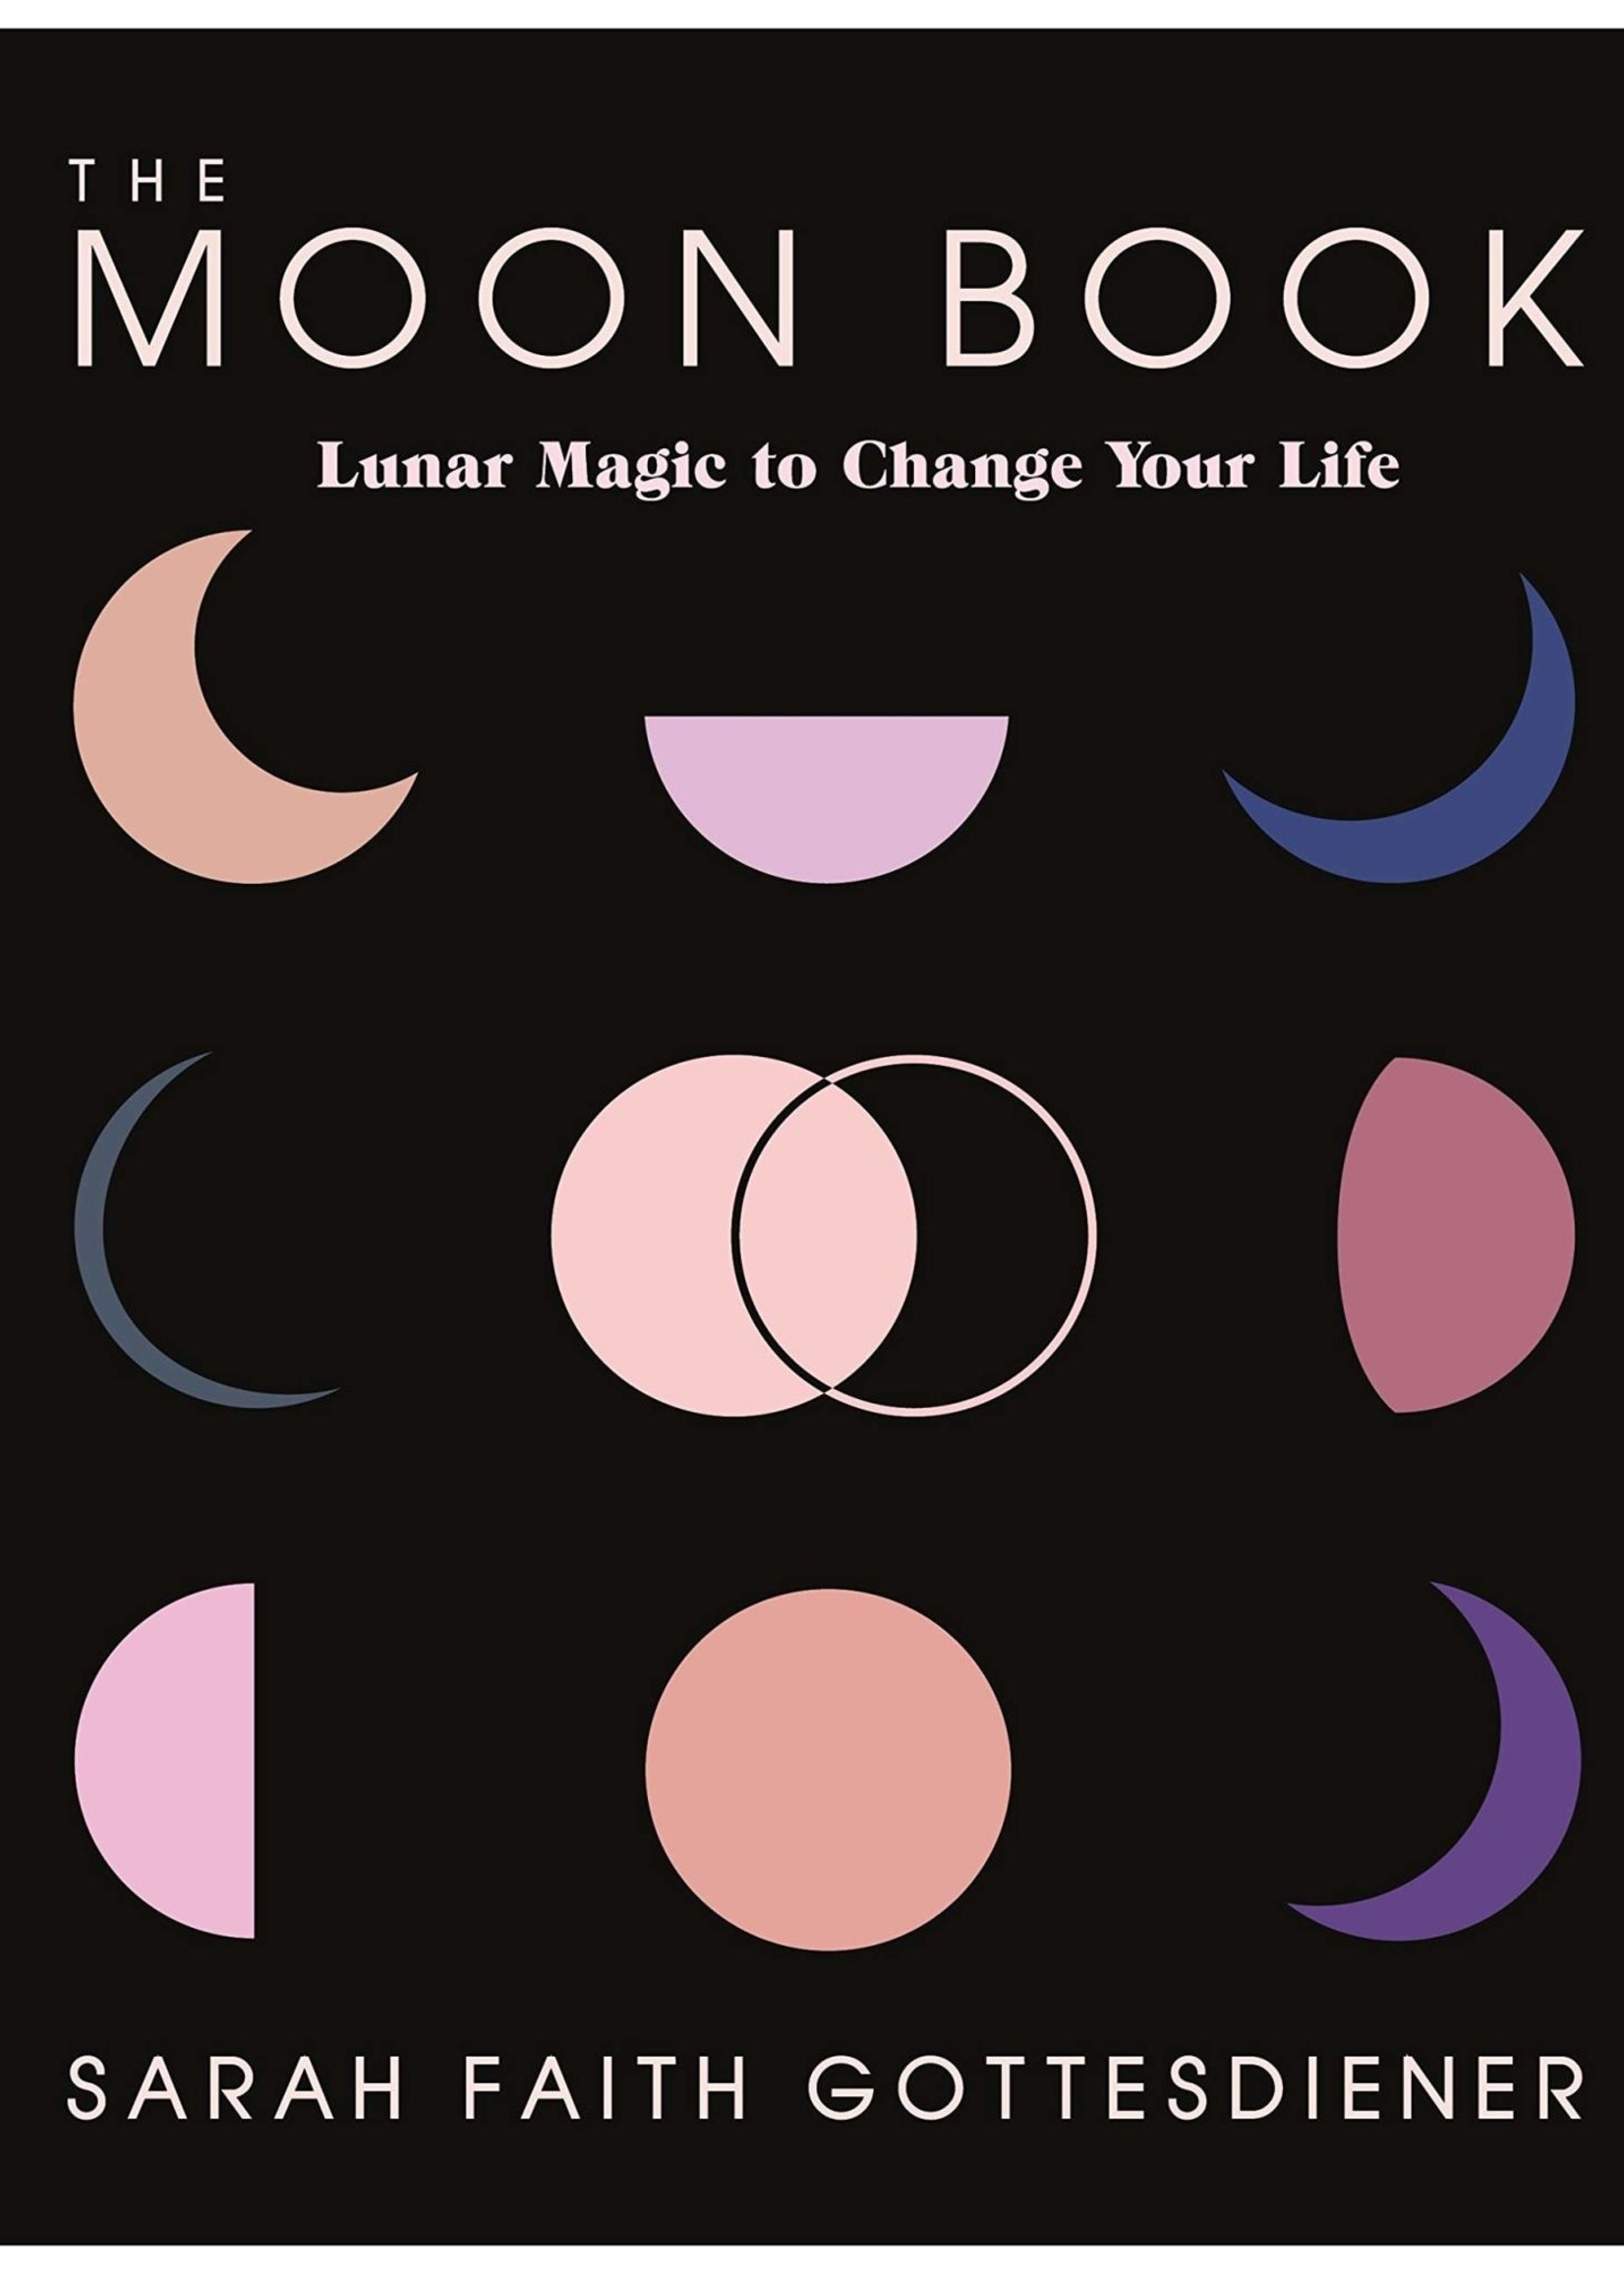 The Moon Book-Lunar Magic to Change Your Life